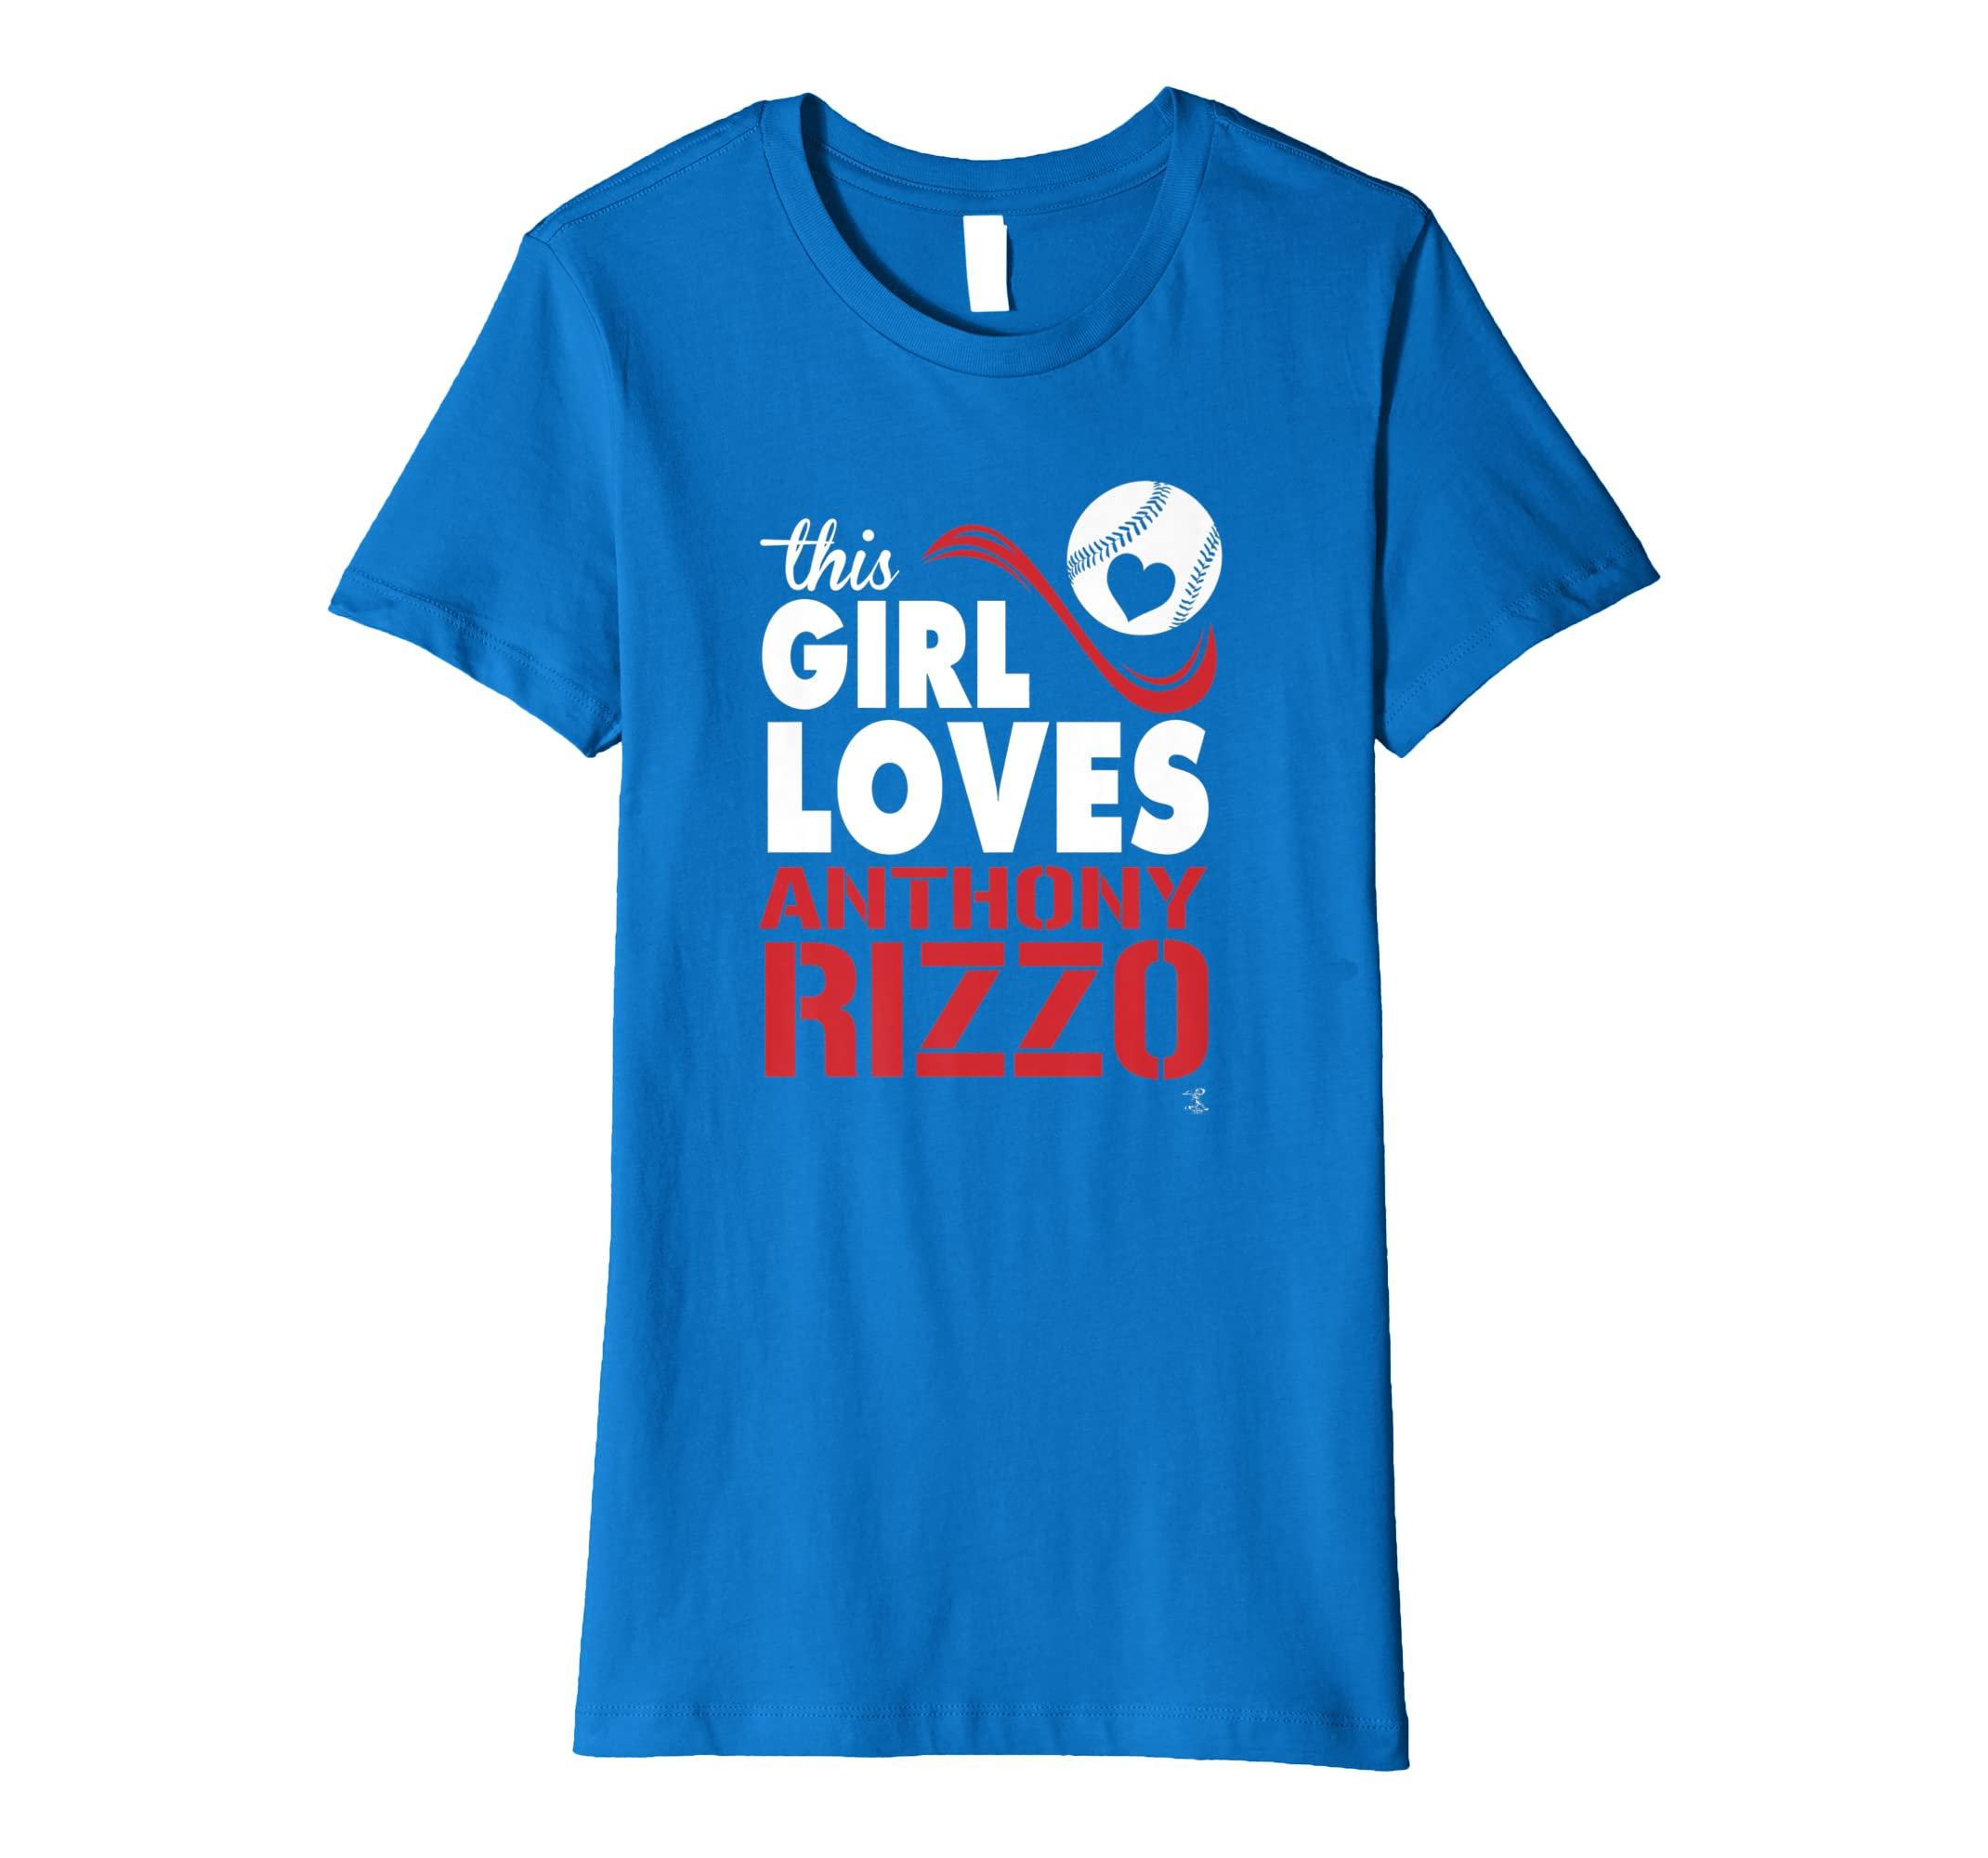 reputable site 3e34a 112a6 Anthony Rizzo This Girl Loves T-Shirt - Apparel